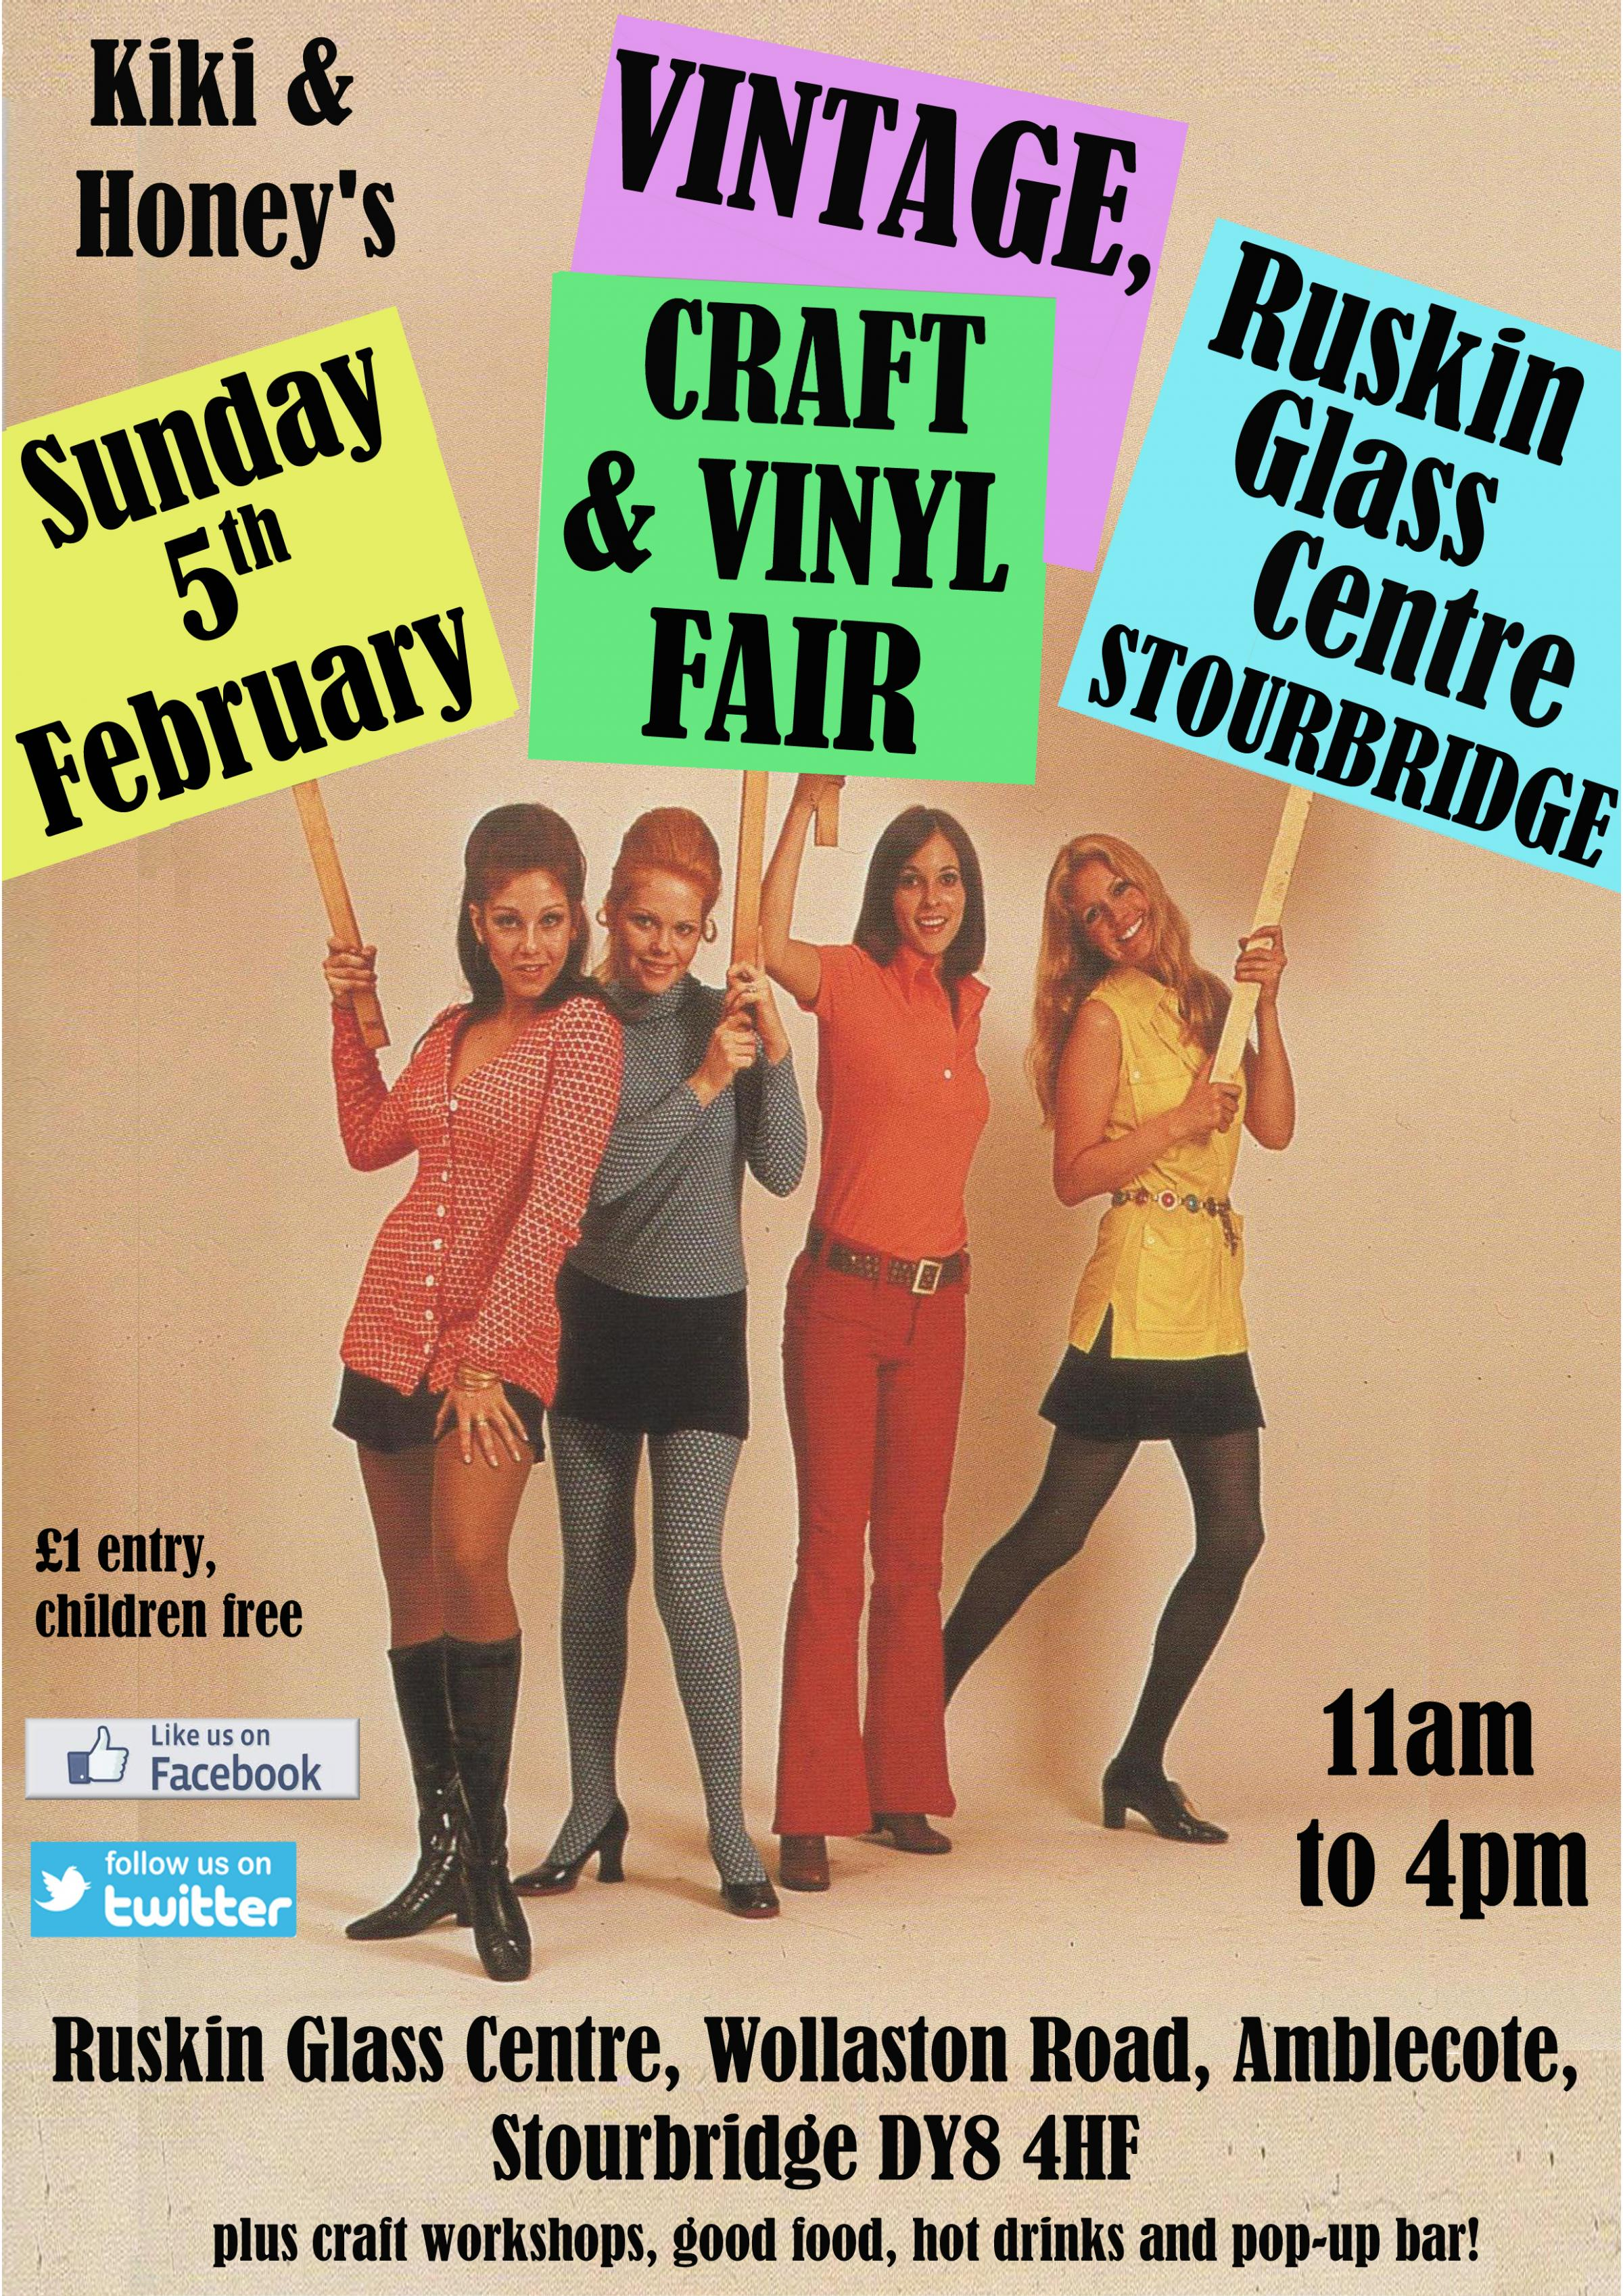 Kiki & Honey's Vintage Fair